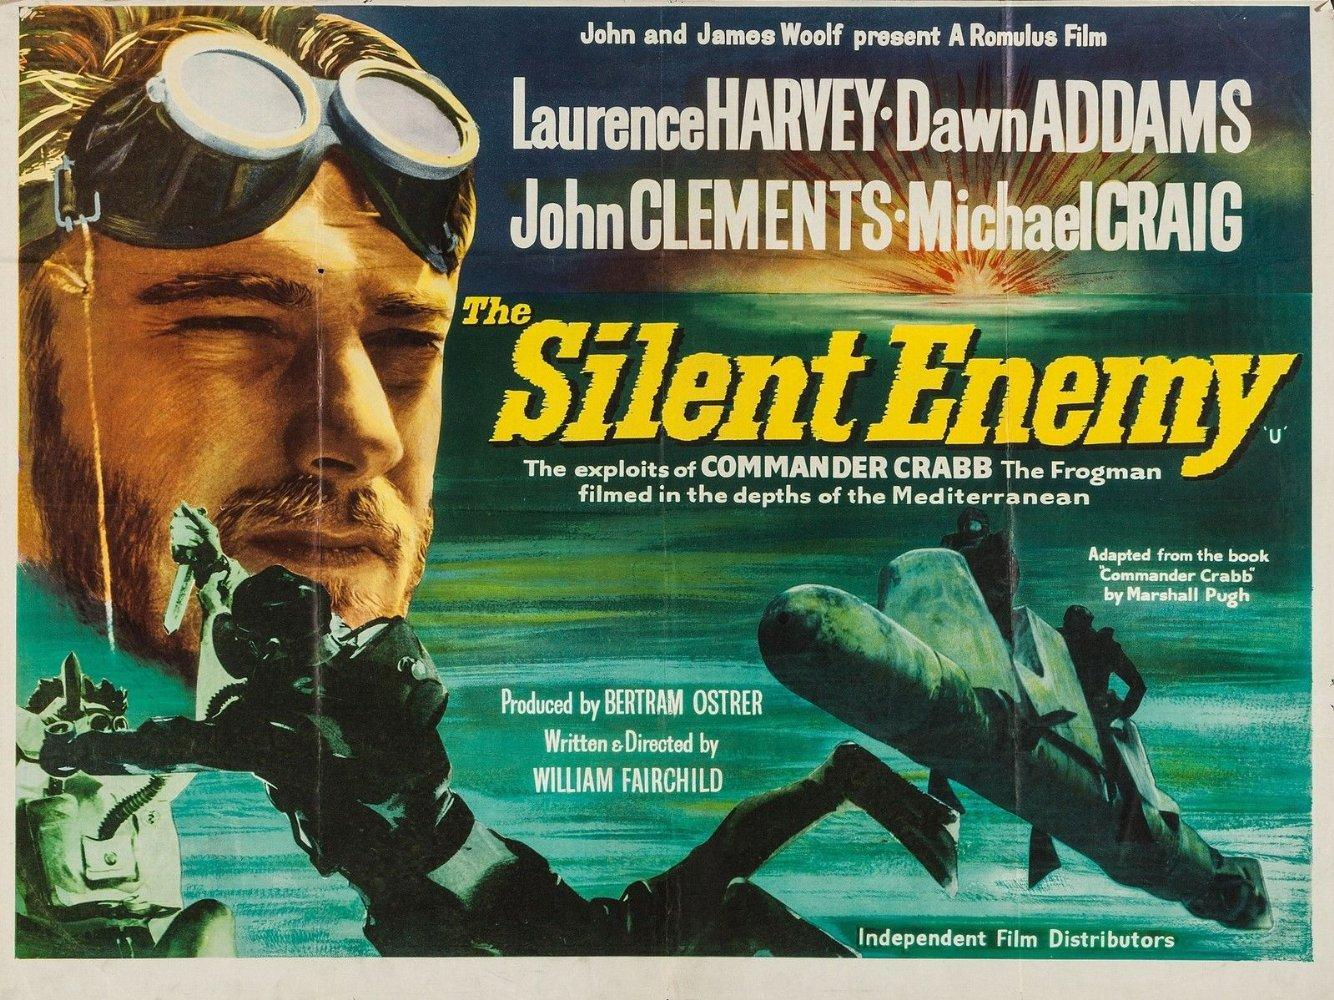 Image gallery for The Silent Enemy - FilmAffinity